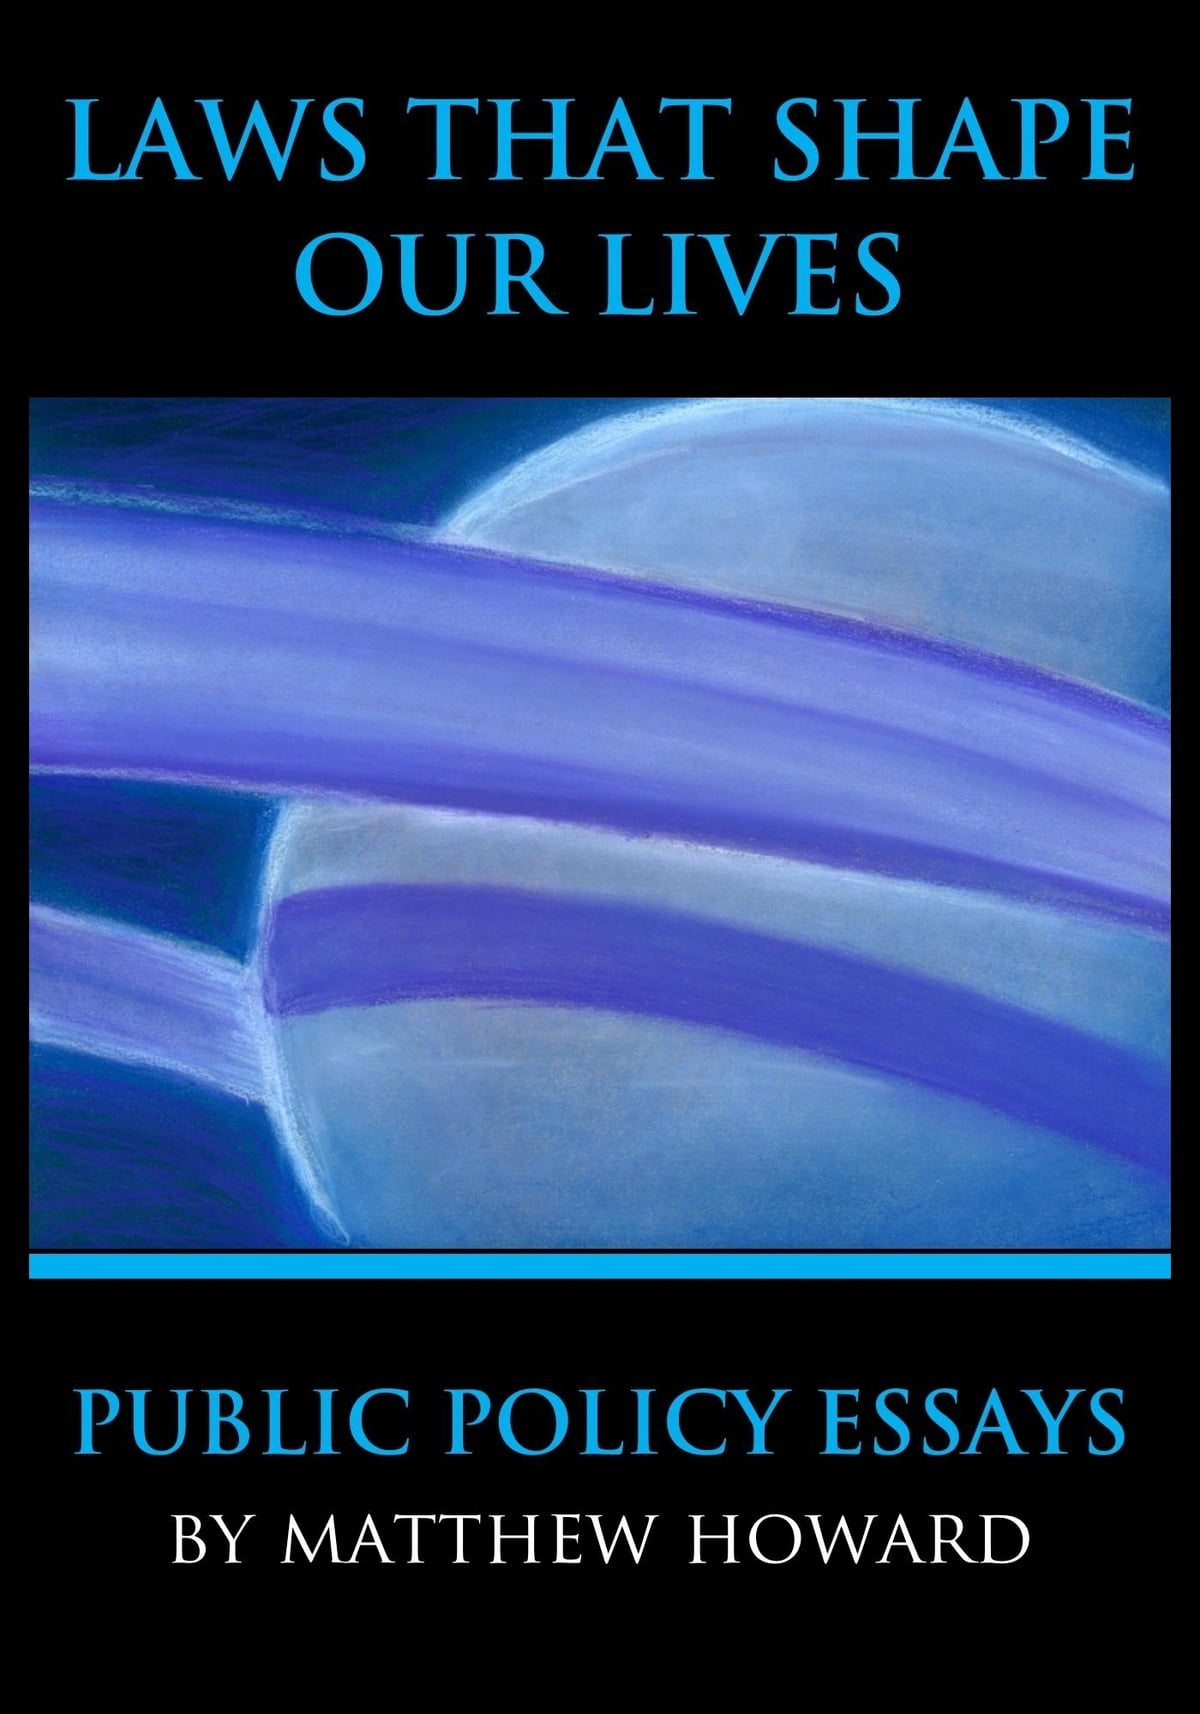 laws that shape our lives public policy essays ebook by matthew laws that shape our lives public policy essays ebook by matthew howard 9781311747662 kobo